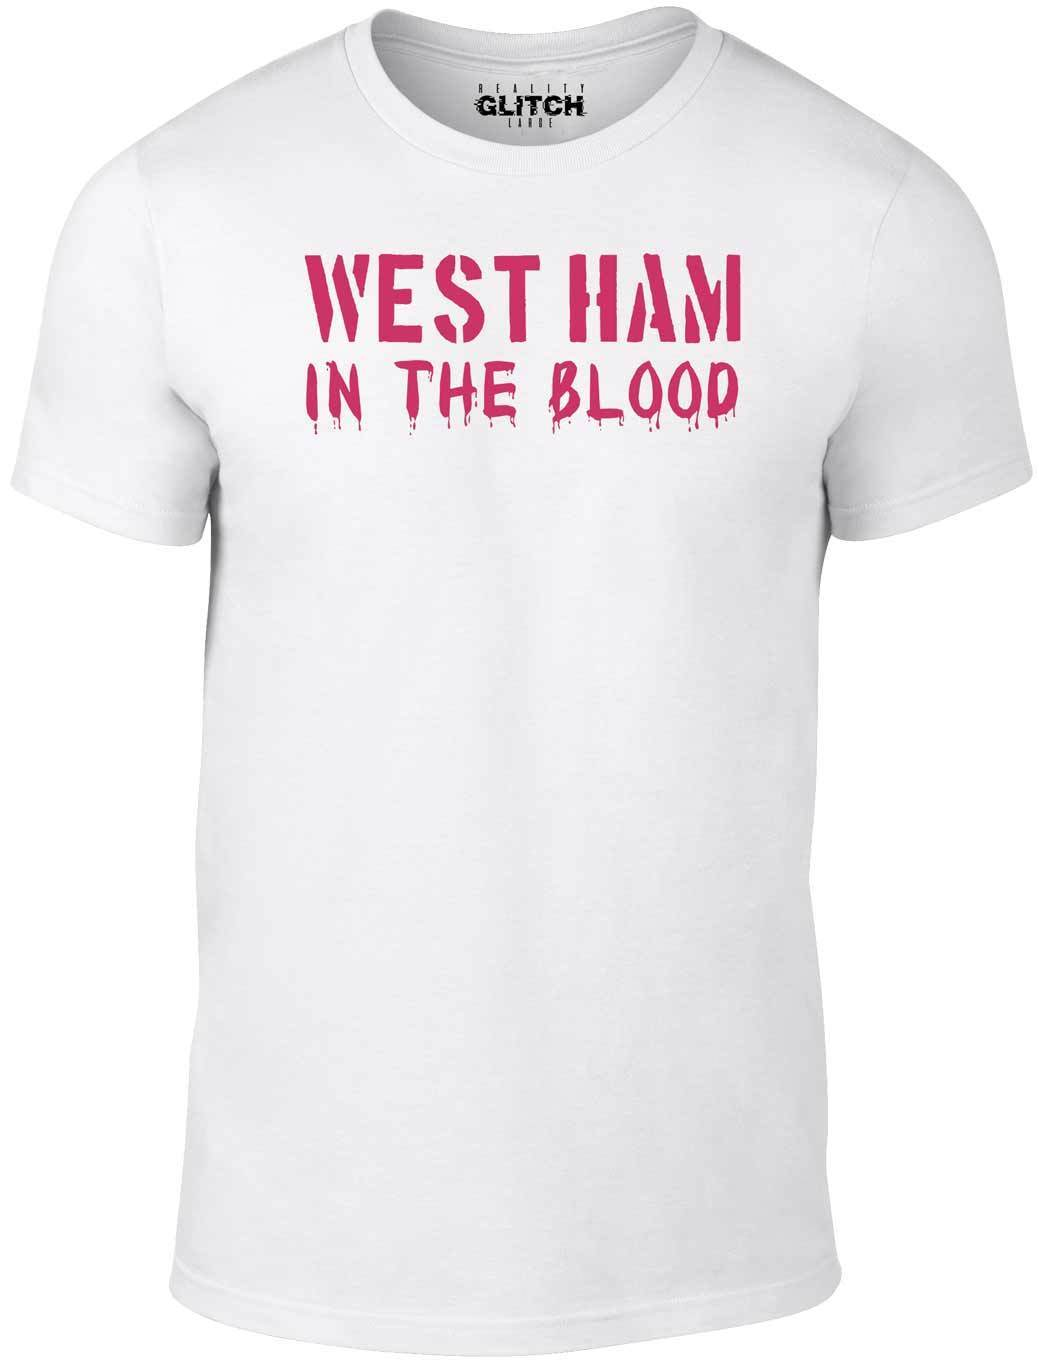 In The Blood Retro Style New T Shirt Football Supporter Hammers  Shirts Funny Tops Tee Unisex